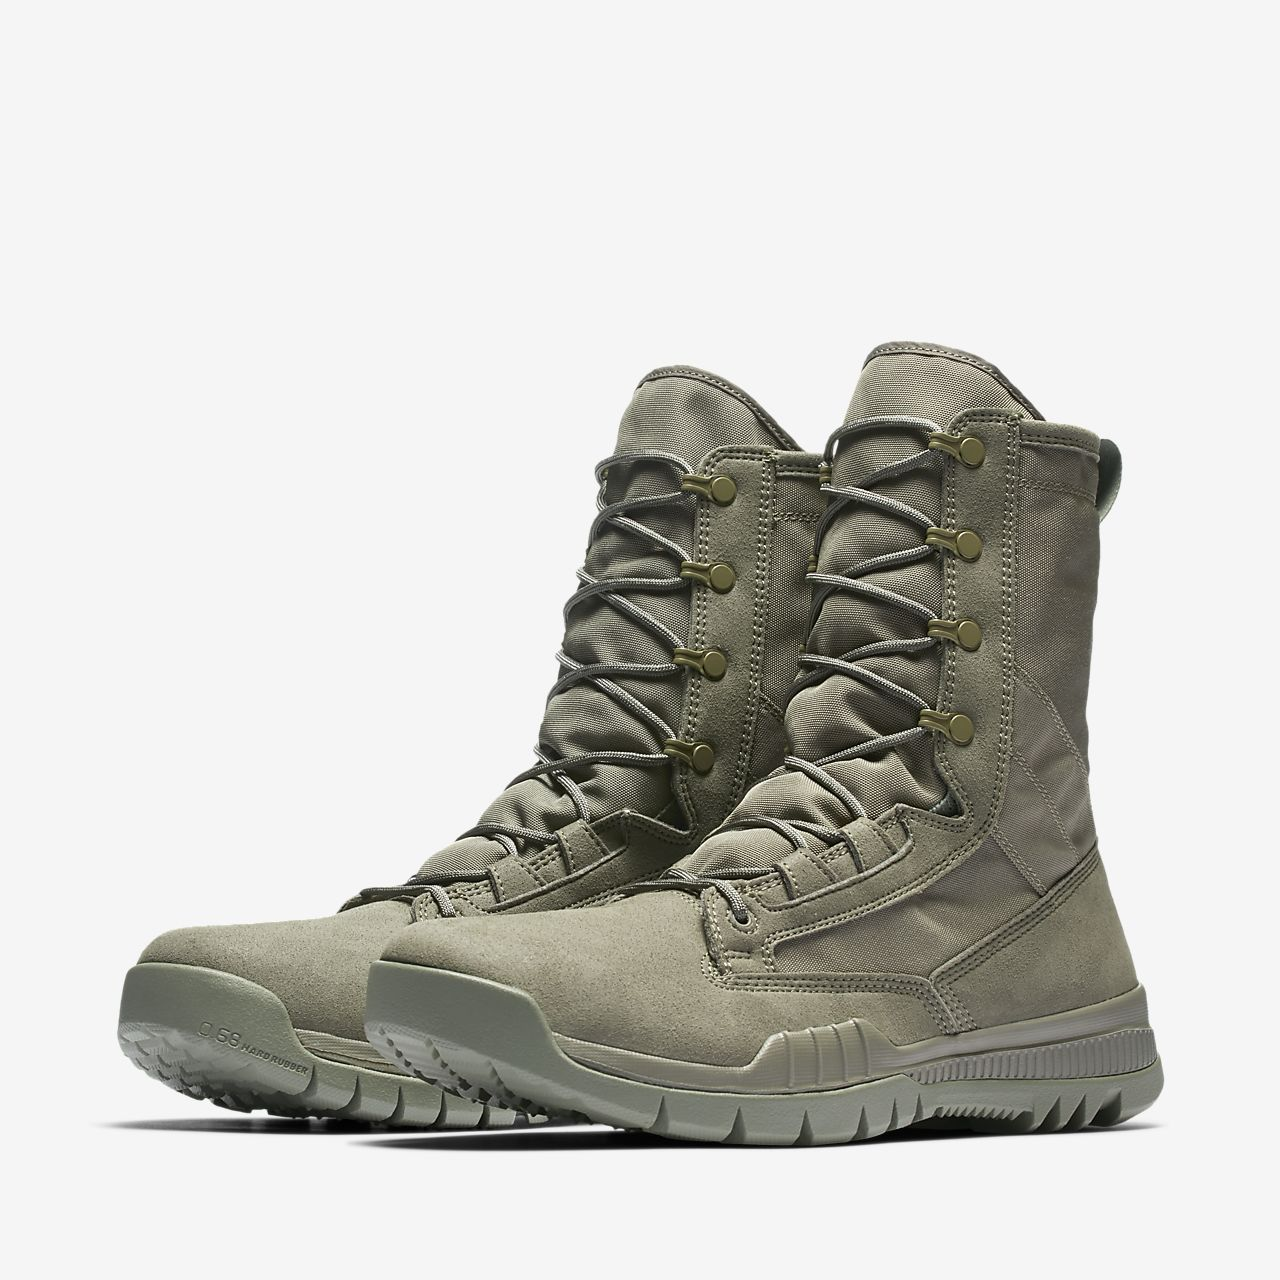 Nike SFB Gen 2 20.5cm (approx.) Men's Unisex Boots Grey/White pX4065O